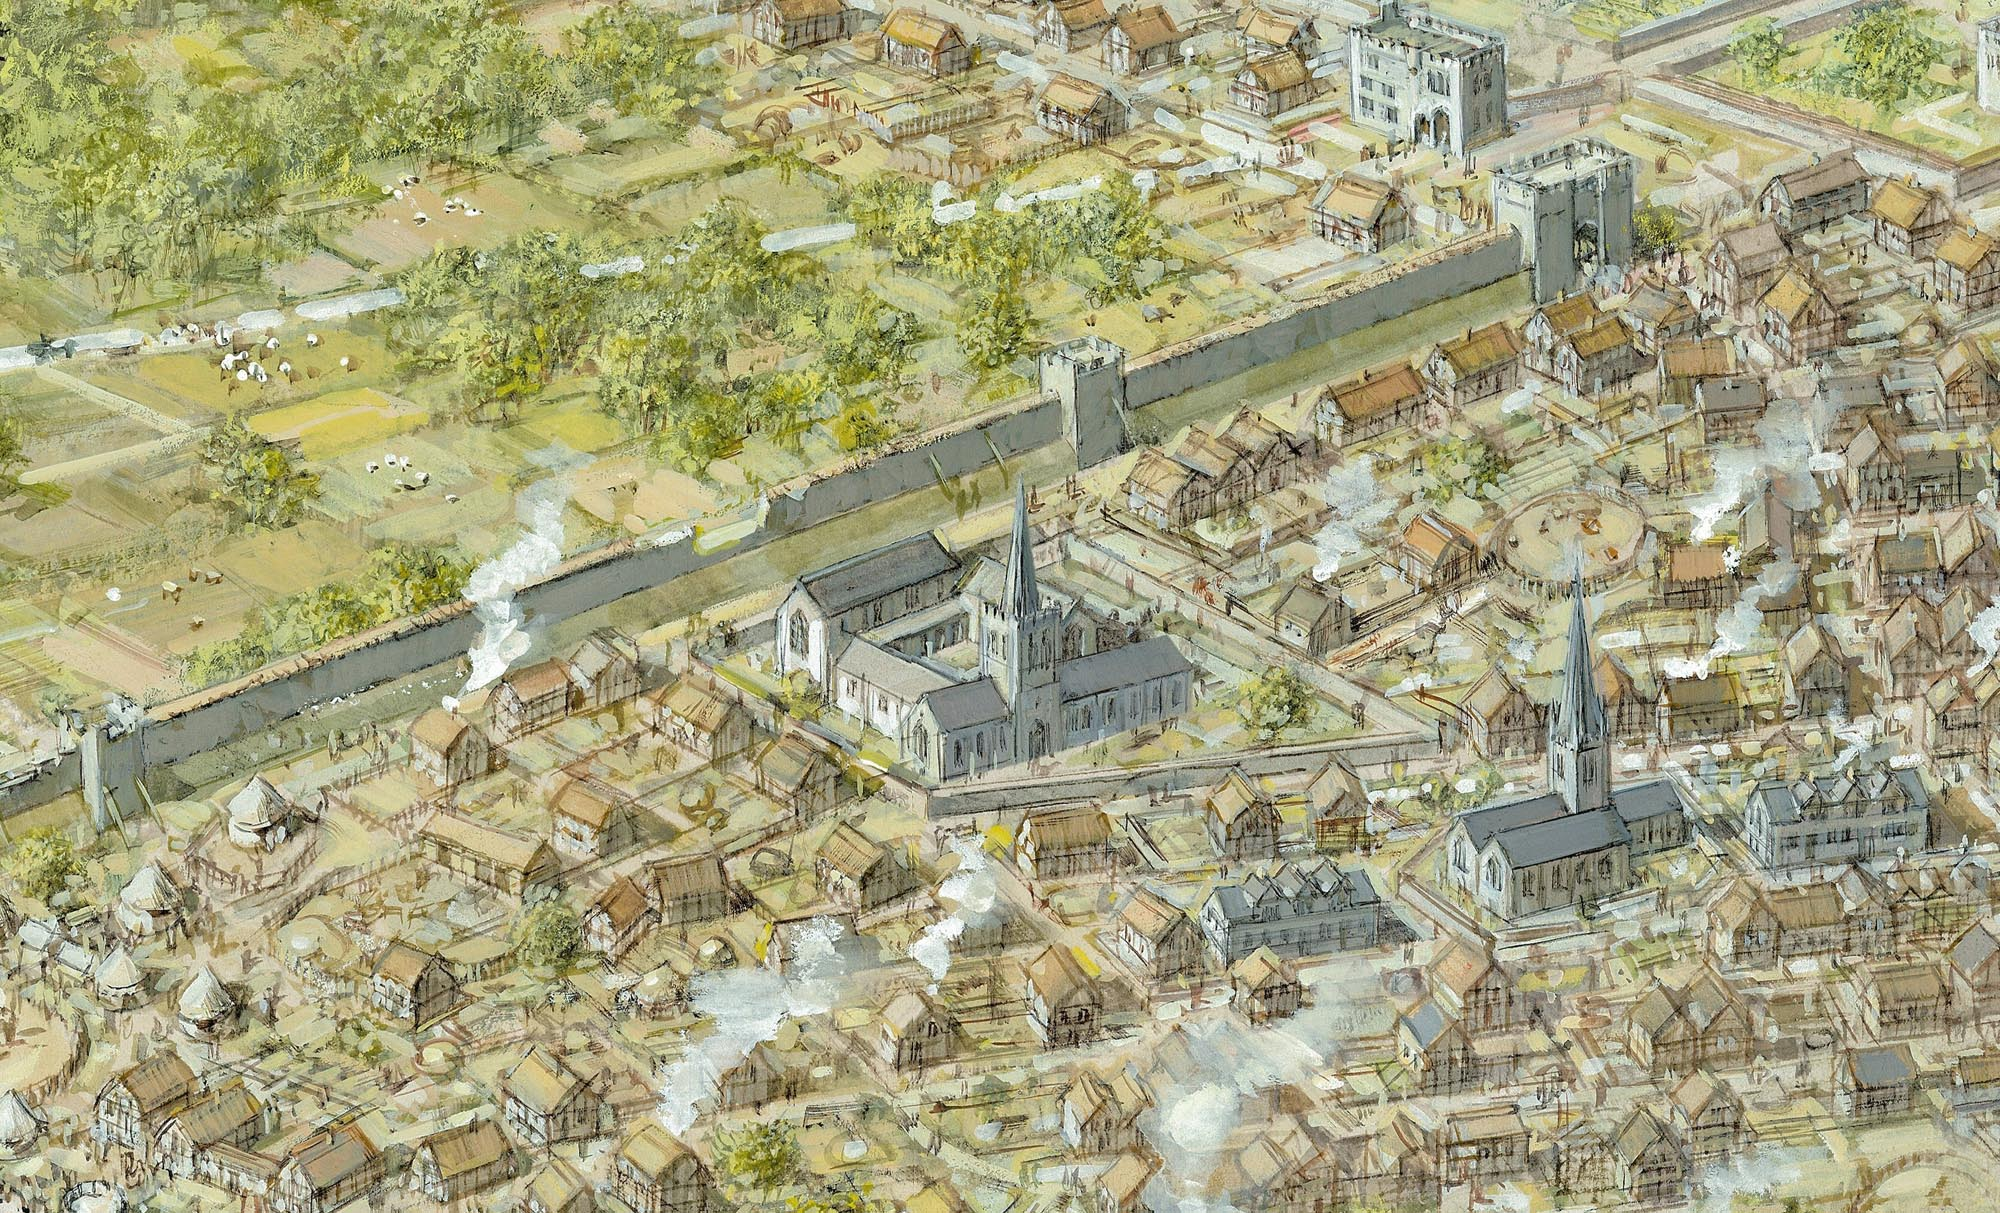 An artist impression of 15th Century Leicester - Mike Codd / University of Leicester Archaeological Services